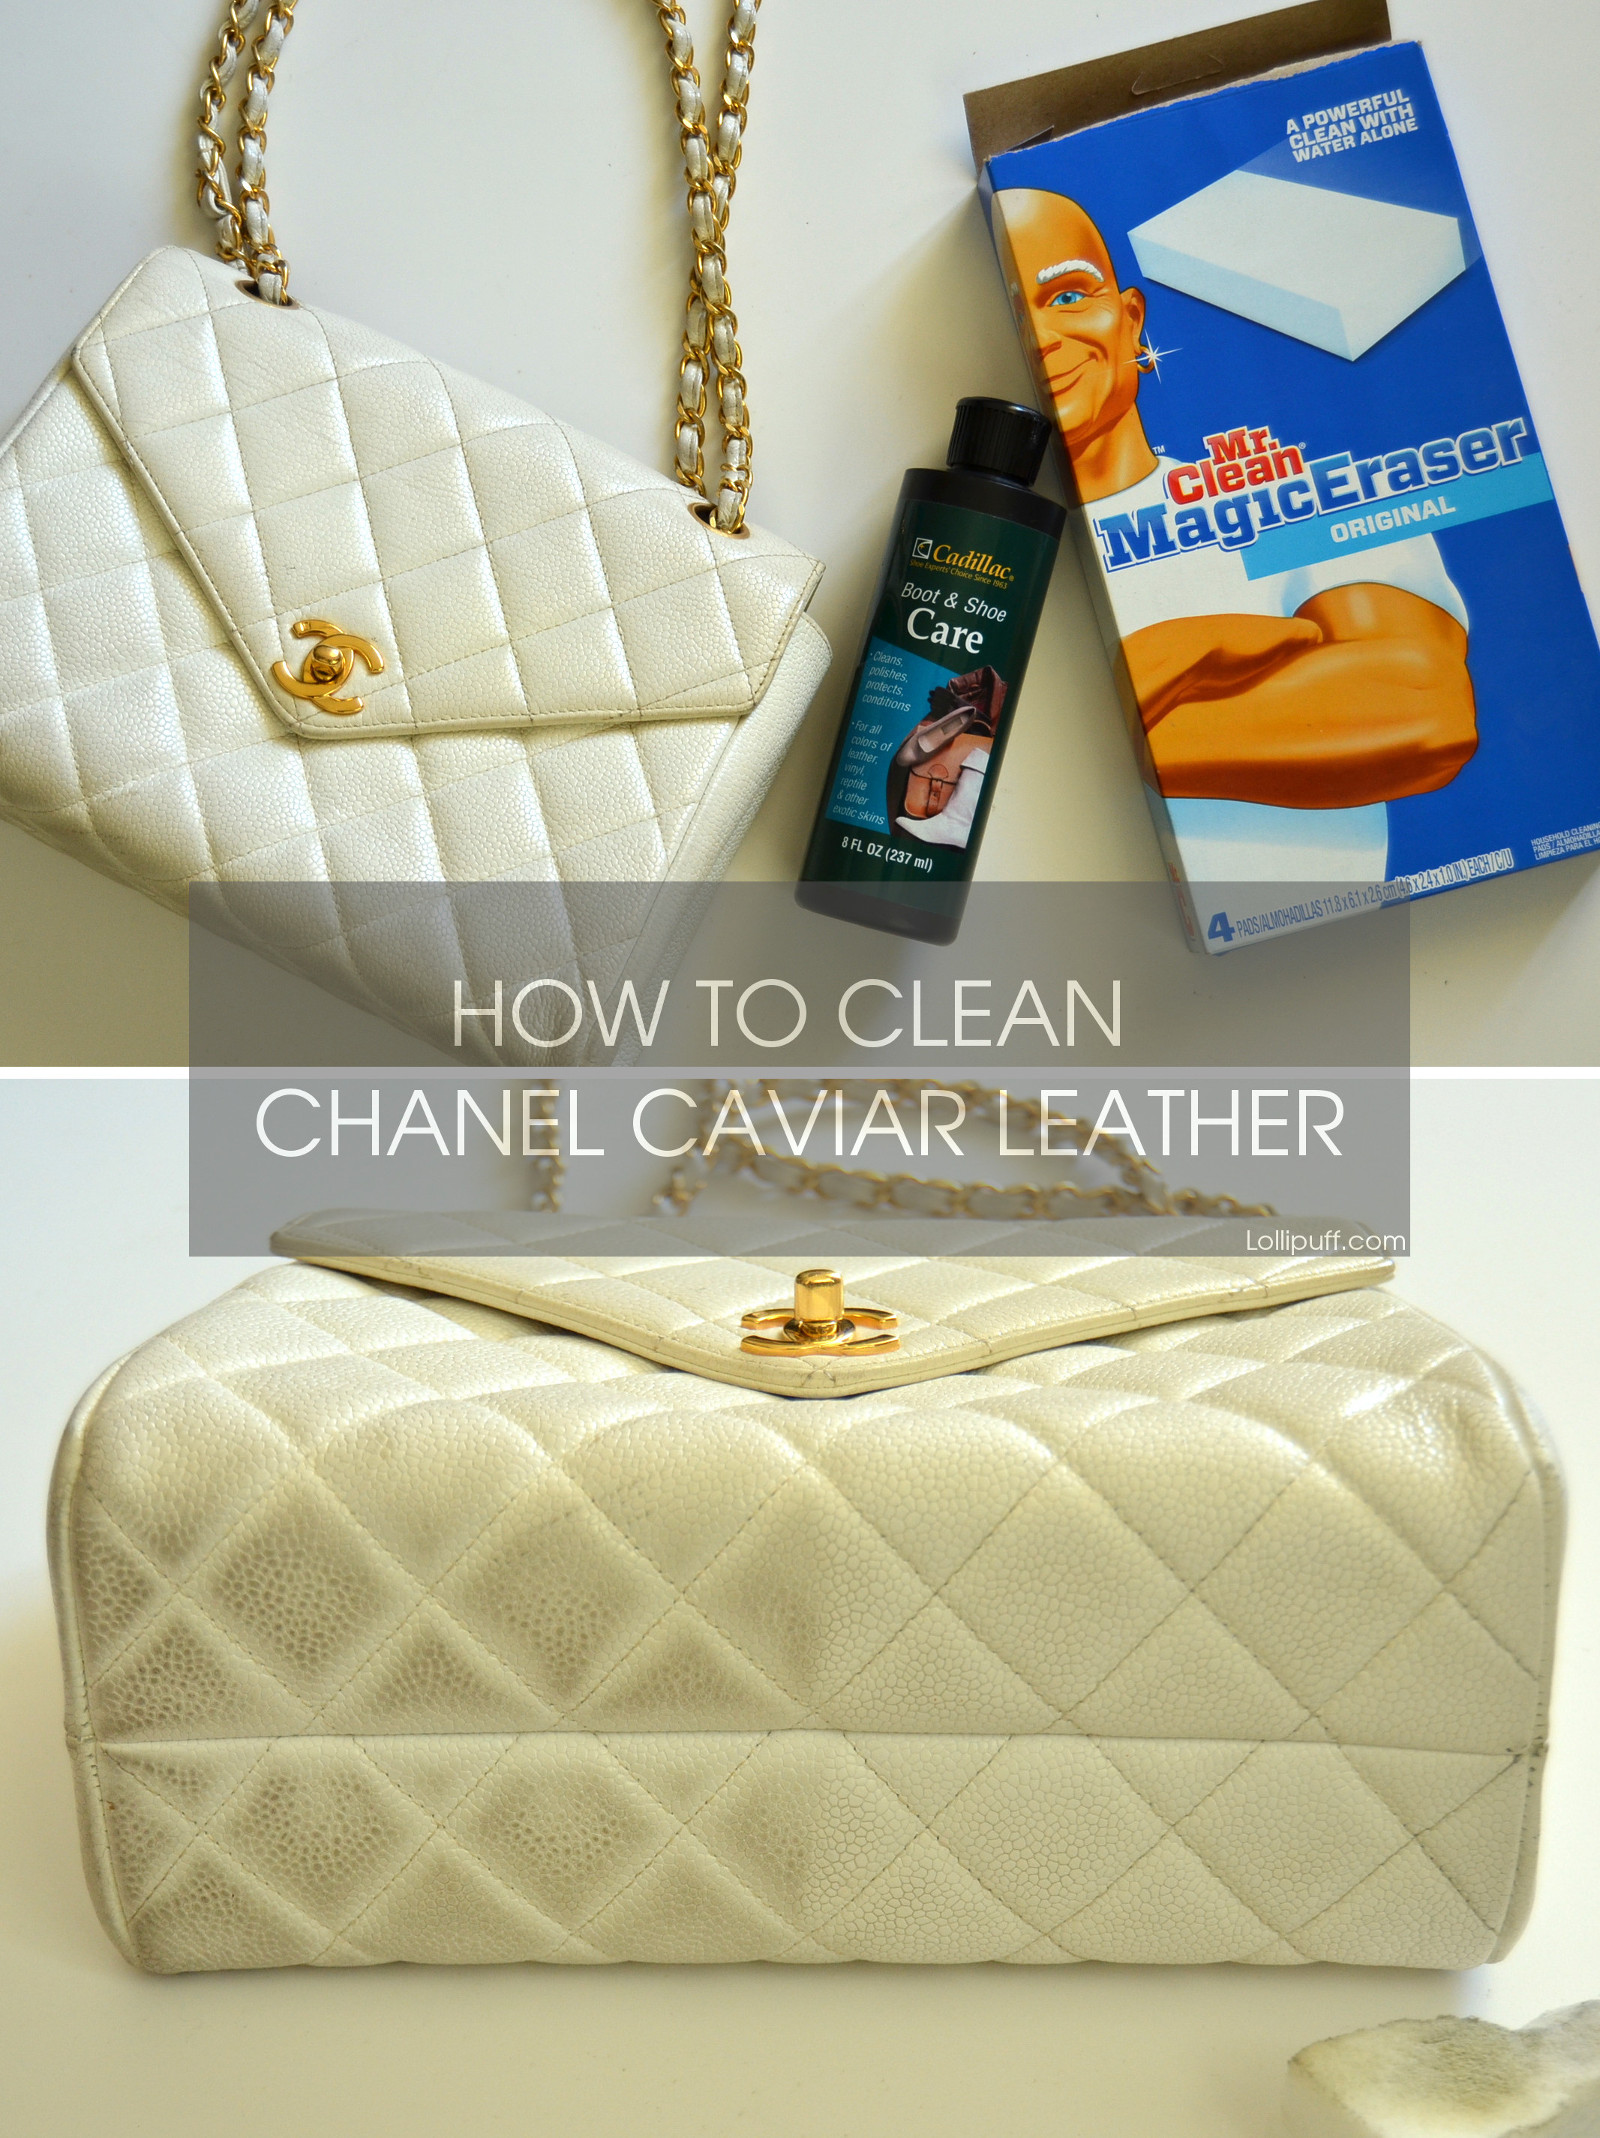 how to clean light colored stained Chanel caviar leather handbag purse